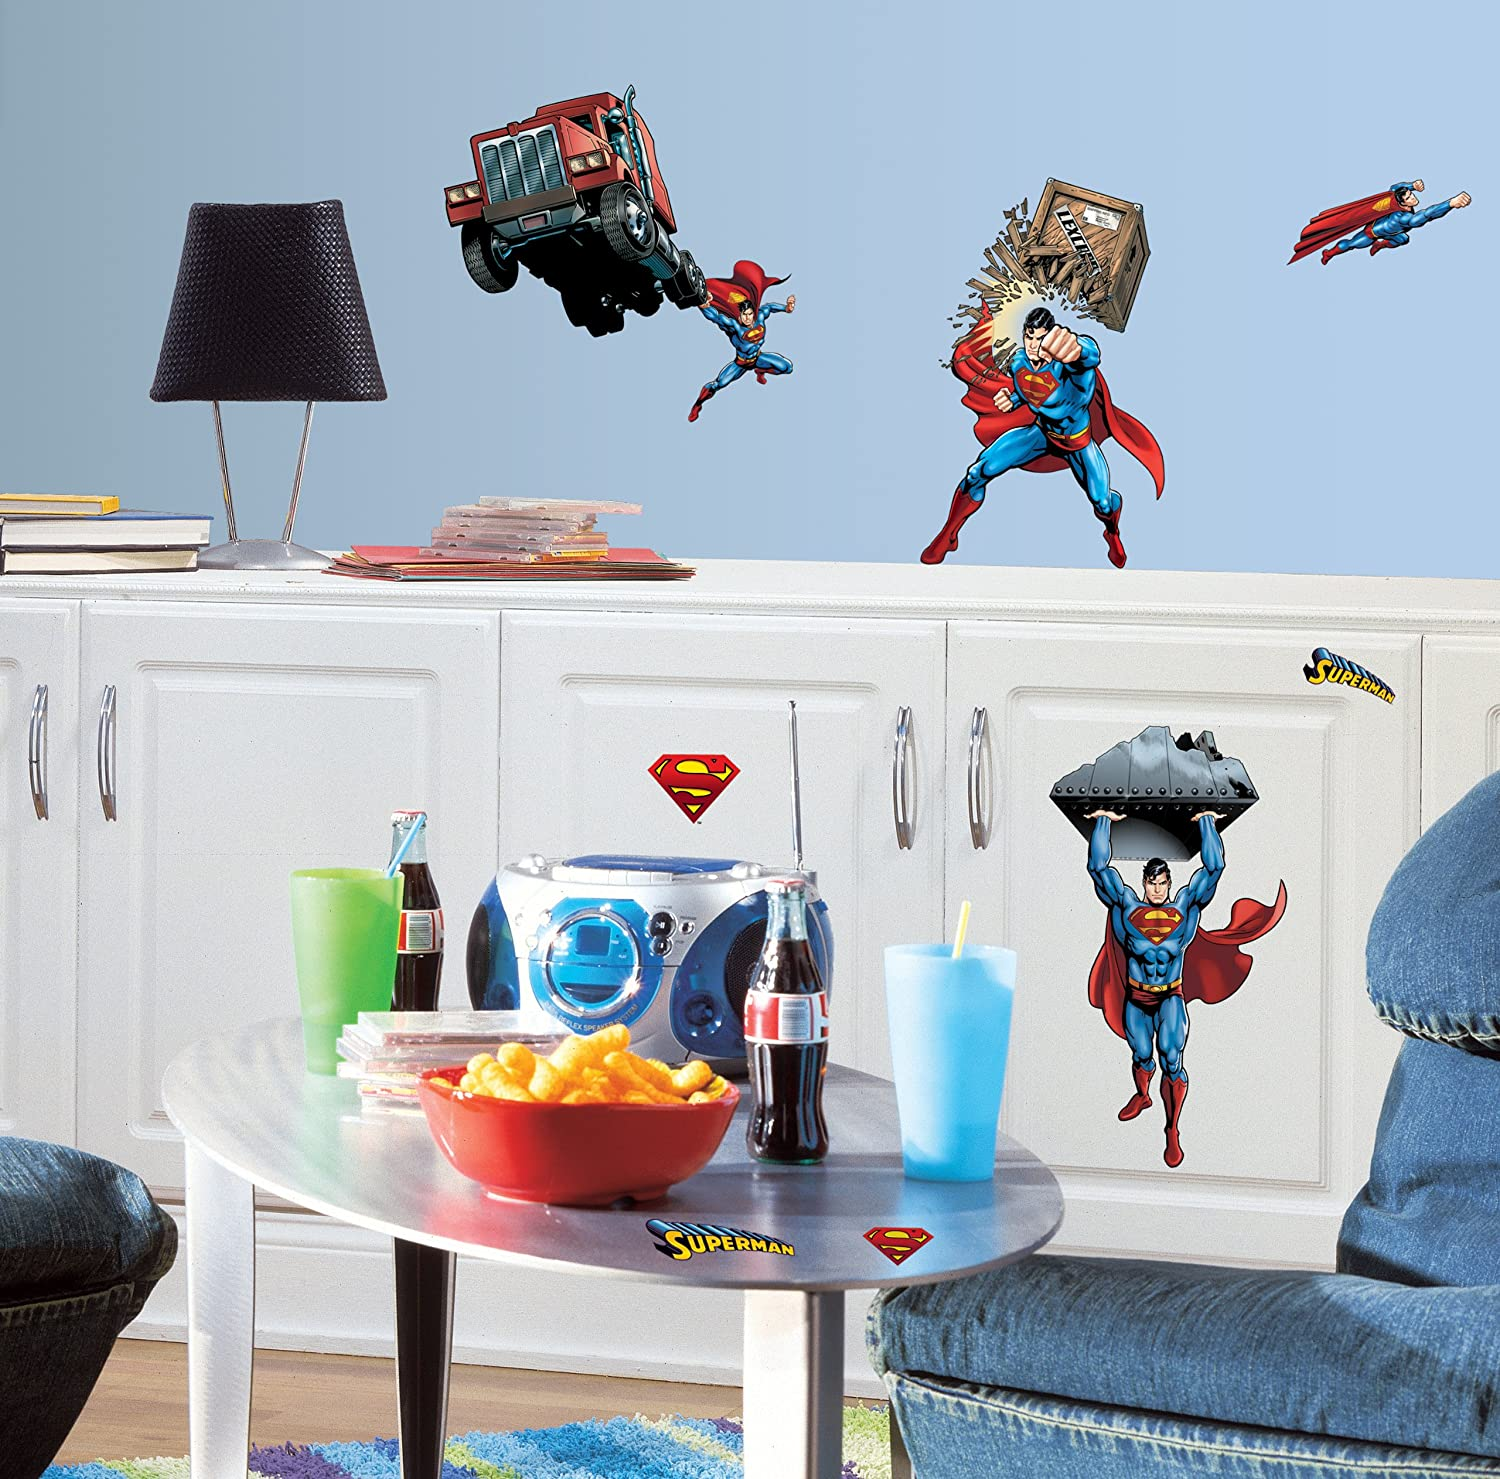 amazoncom roommates rmkscs superman day of doom peel  - amazoncom roommates rmkscs superman day of doom peel  stick walldecals home improvement